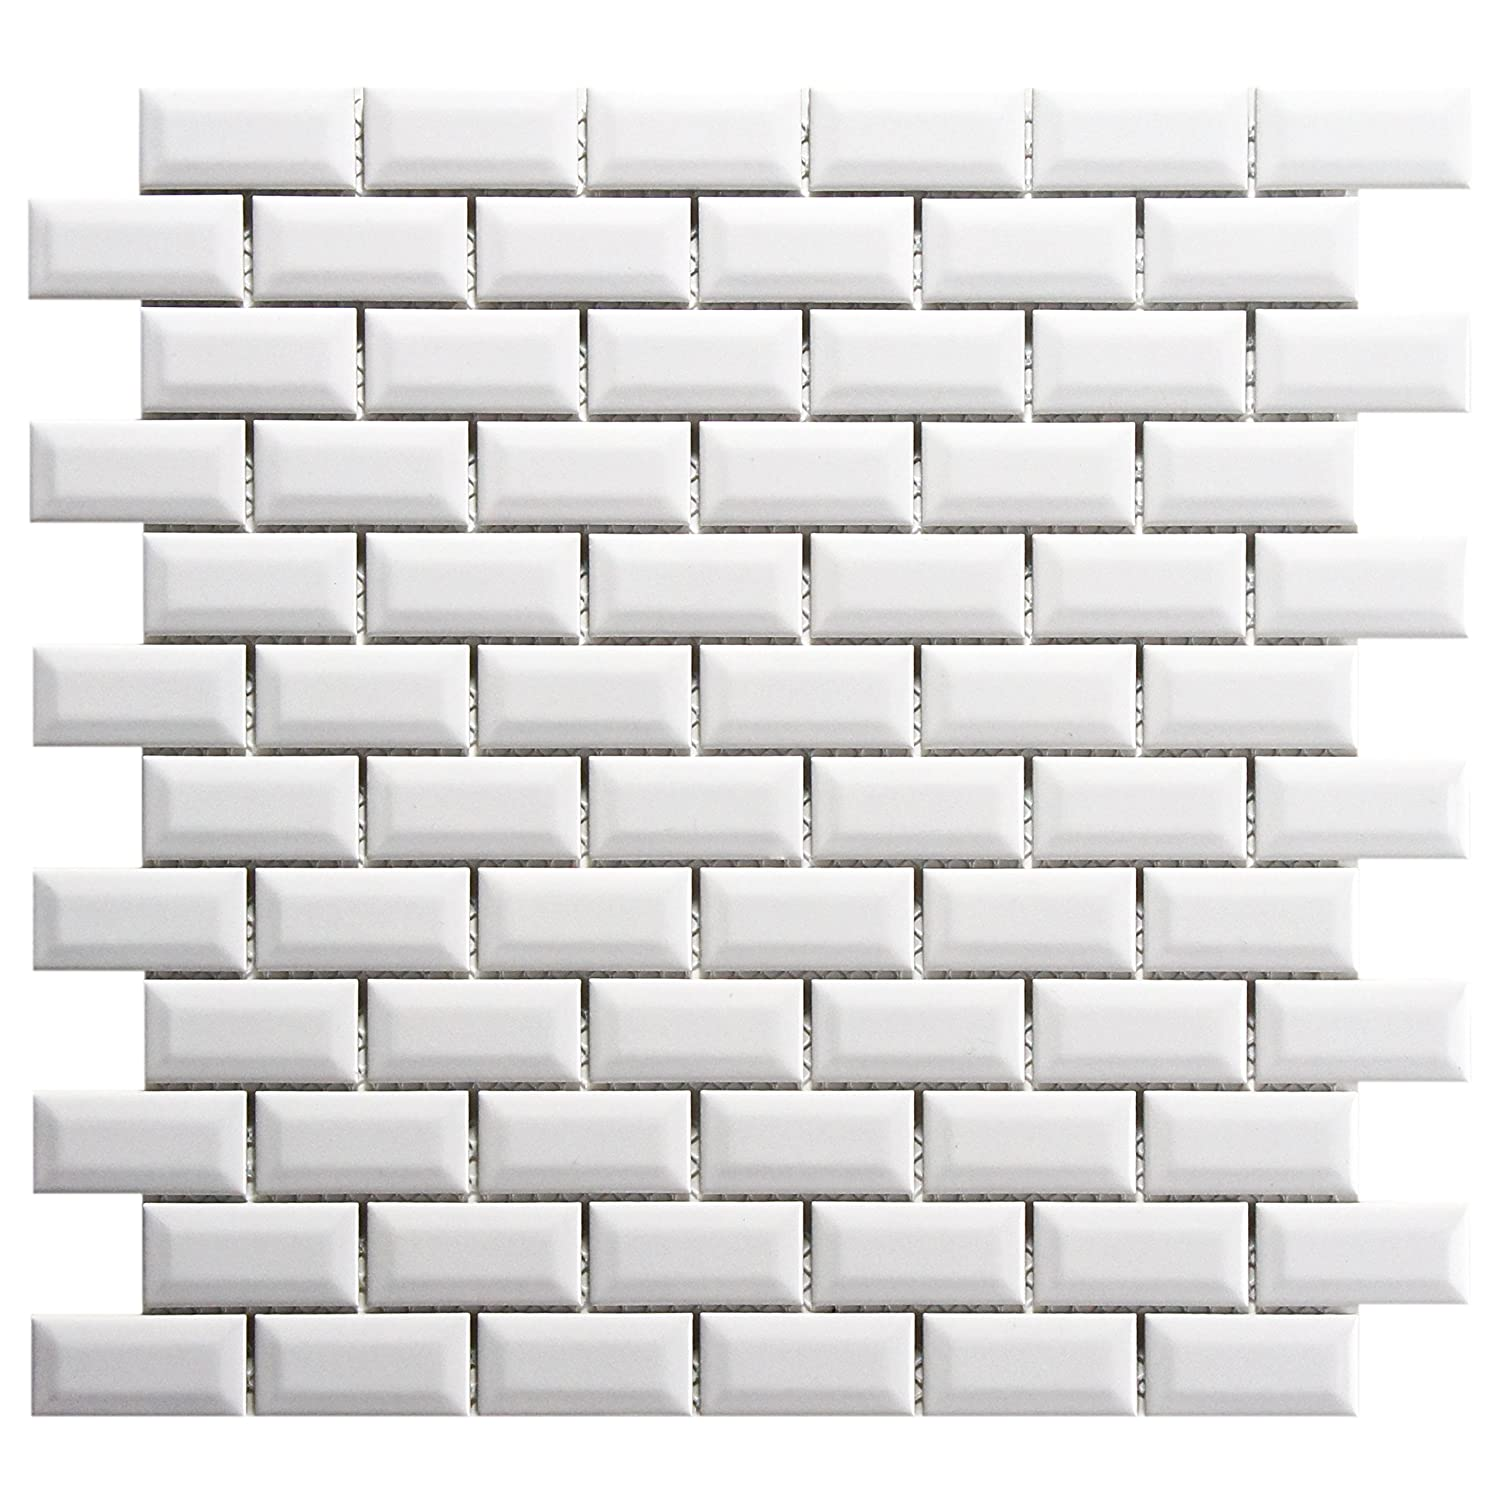 Somertile Fxlmsbgw Retro Subway Beveled Porcelain Floor And Wall